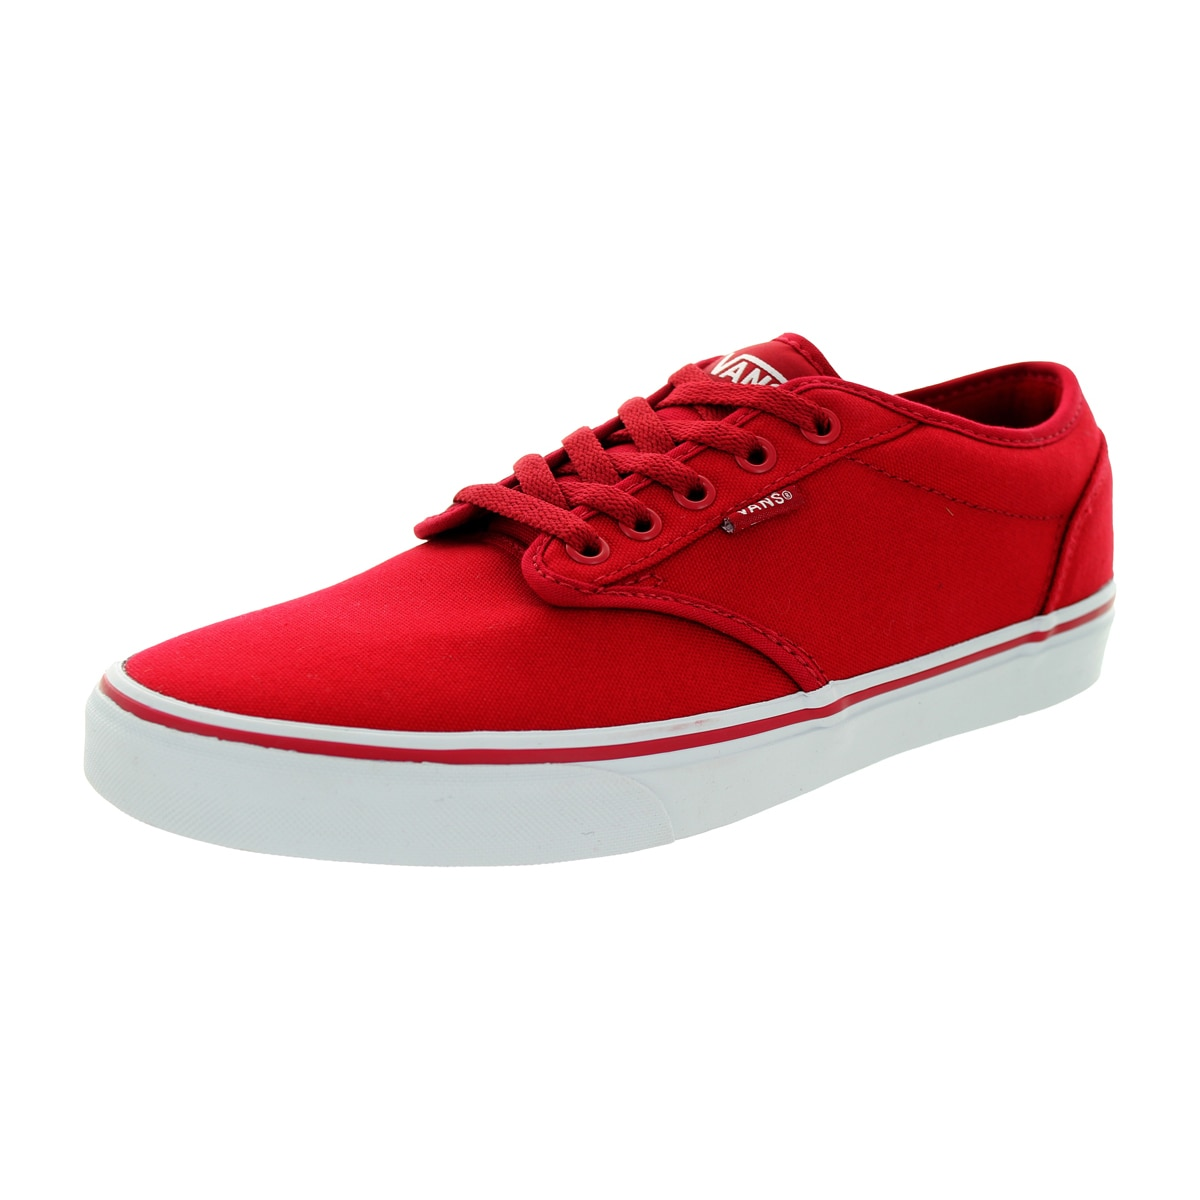 9e274c823e Shop Vans Men s Atwood Red Canvas Skate Shoes - Free Shipping Today -  Overstock.com - 12115152